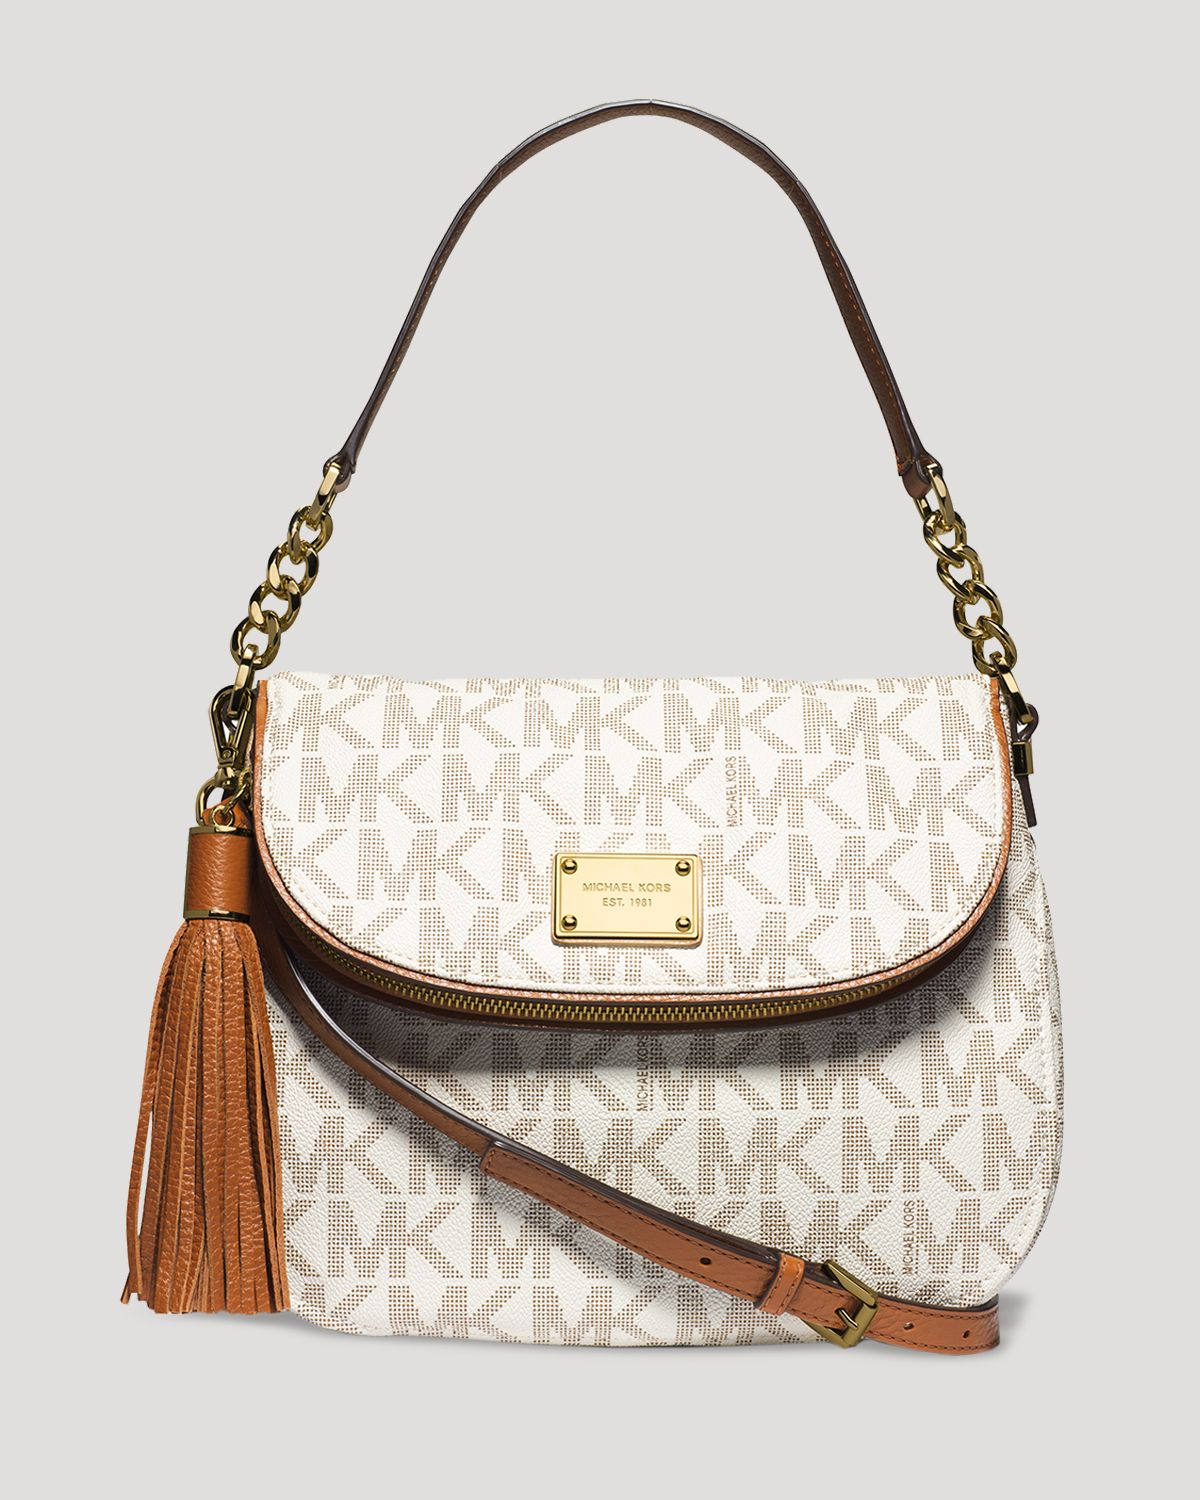 568db5bcf1210 ... get lyst michael michael kors shoulder bag medium bedford ta michael  kors bedford tassle convertible c75ff